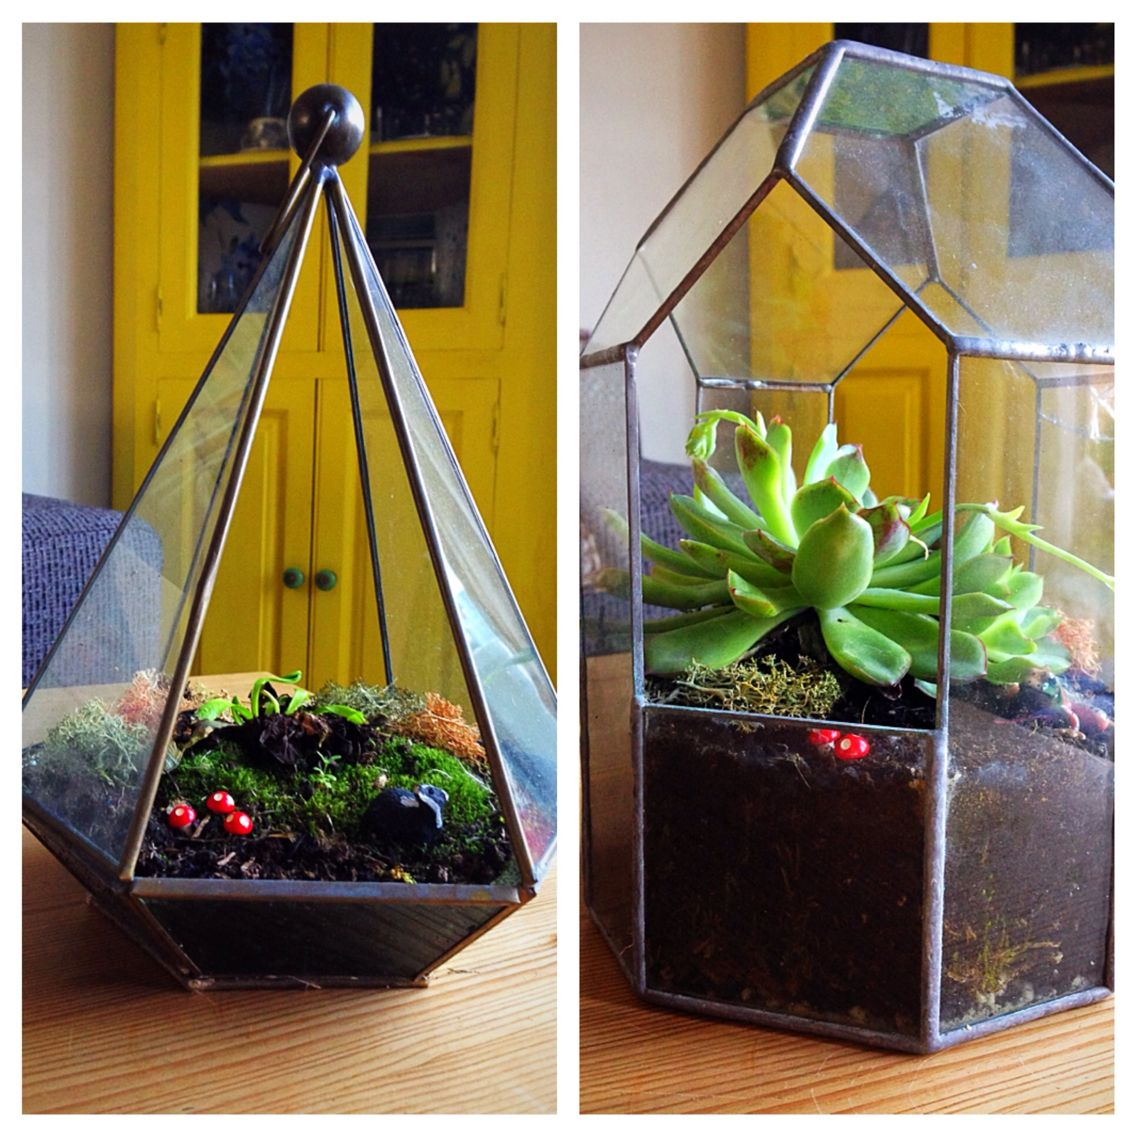 Terrariums I made last summer. One succulent in flower